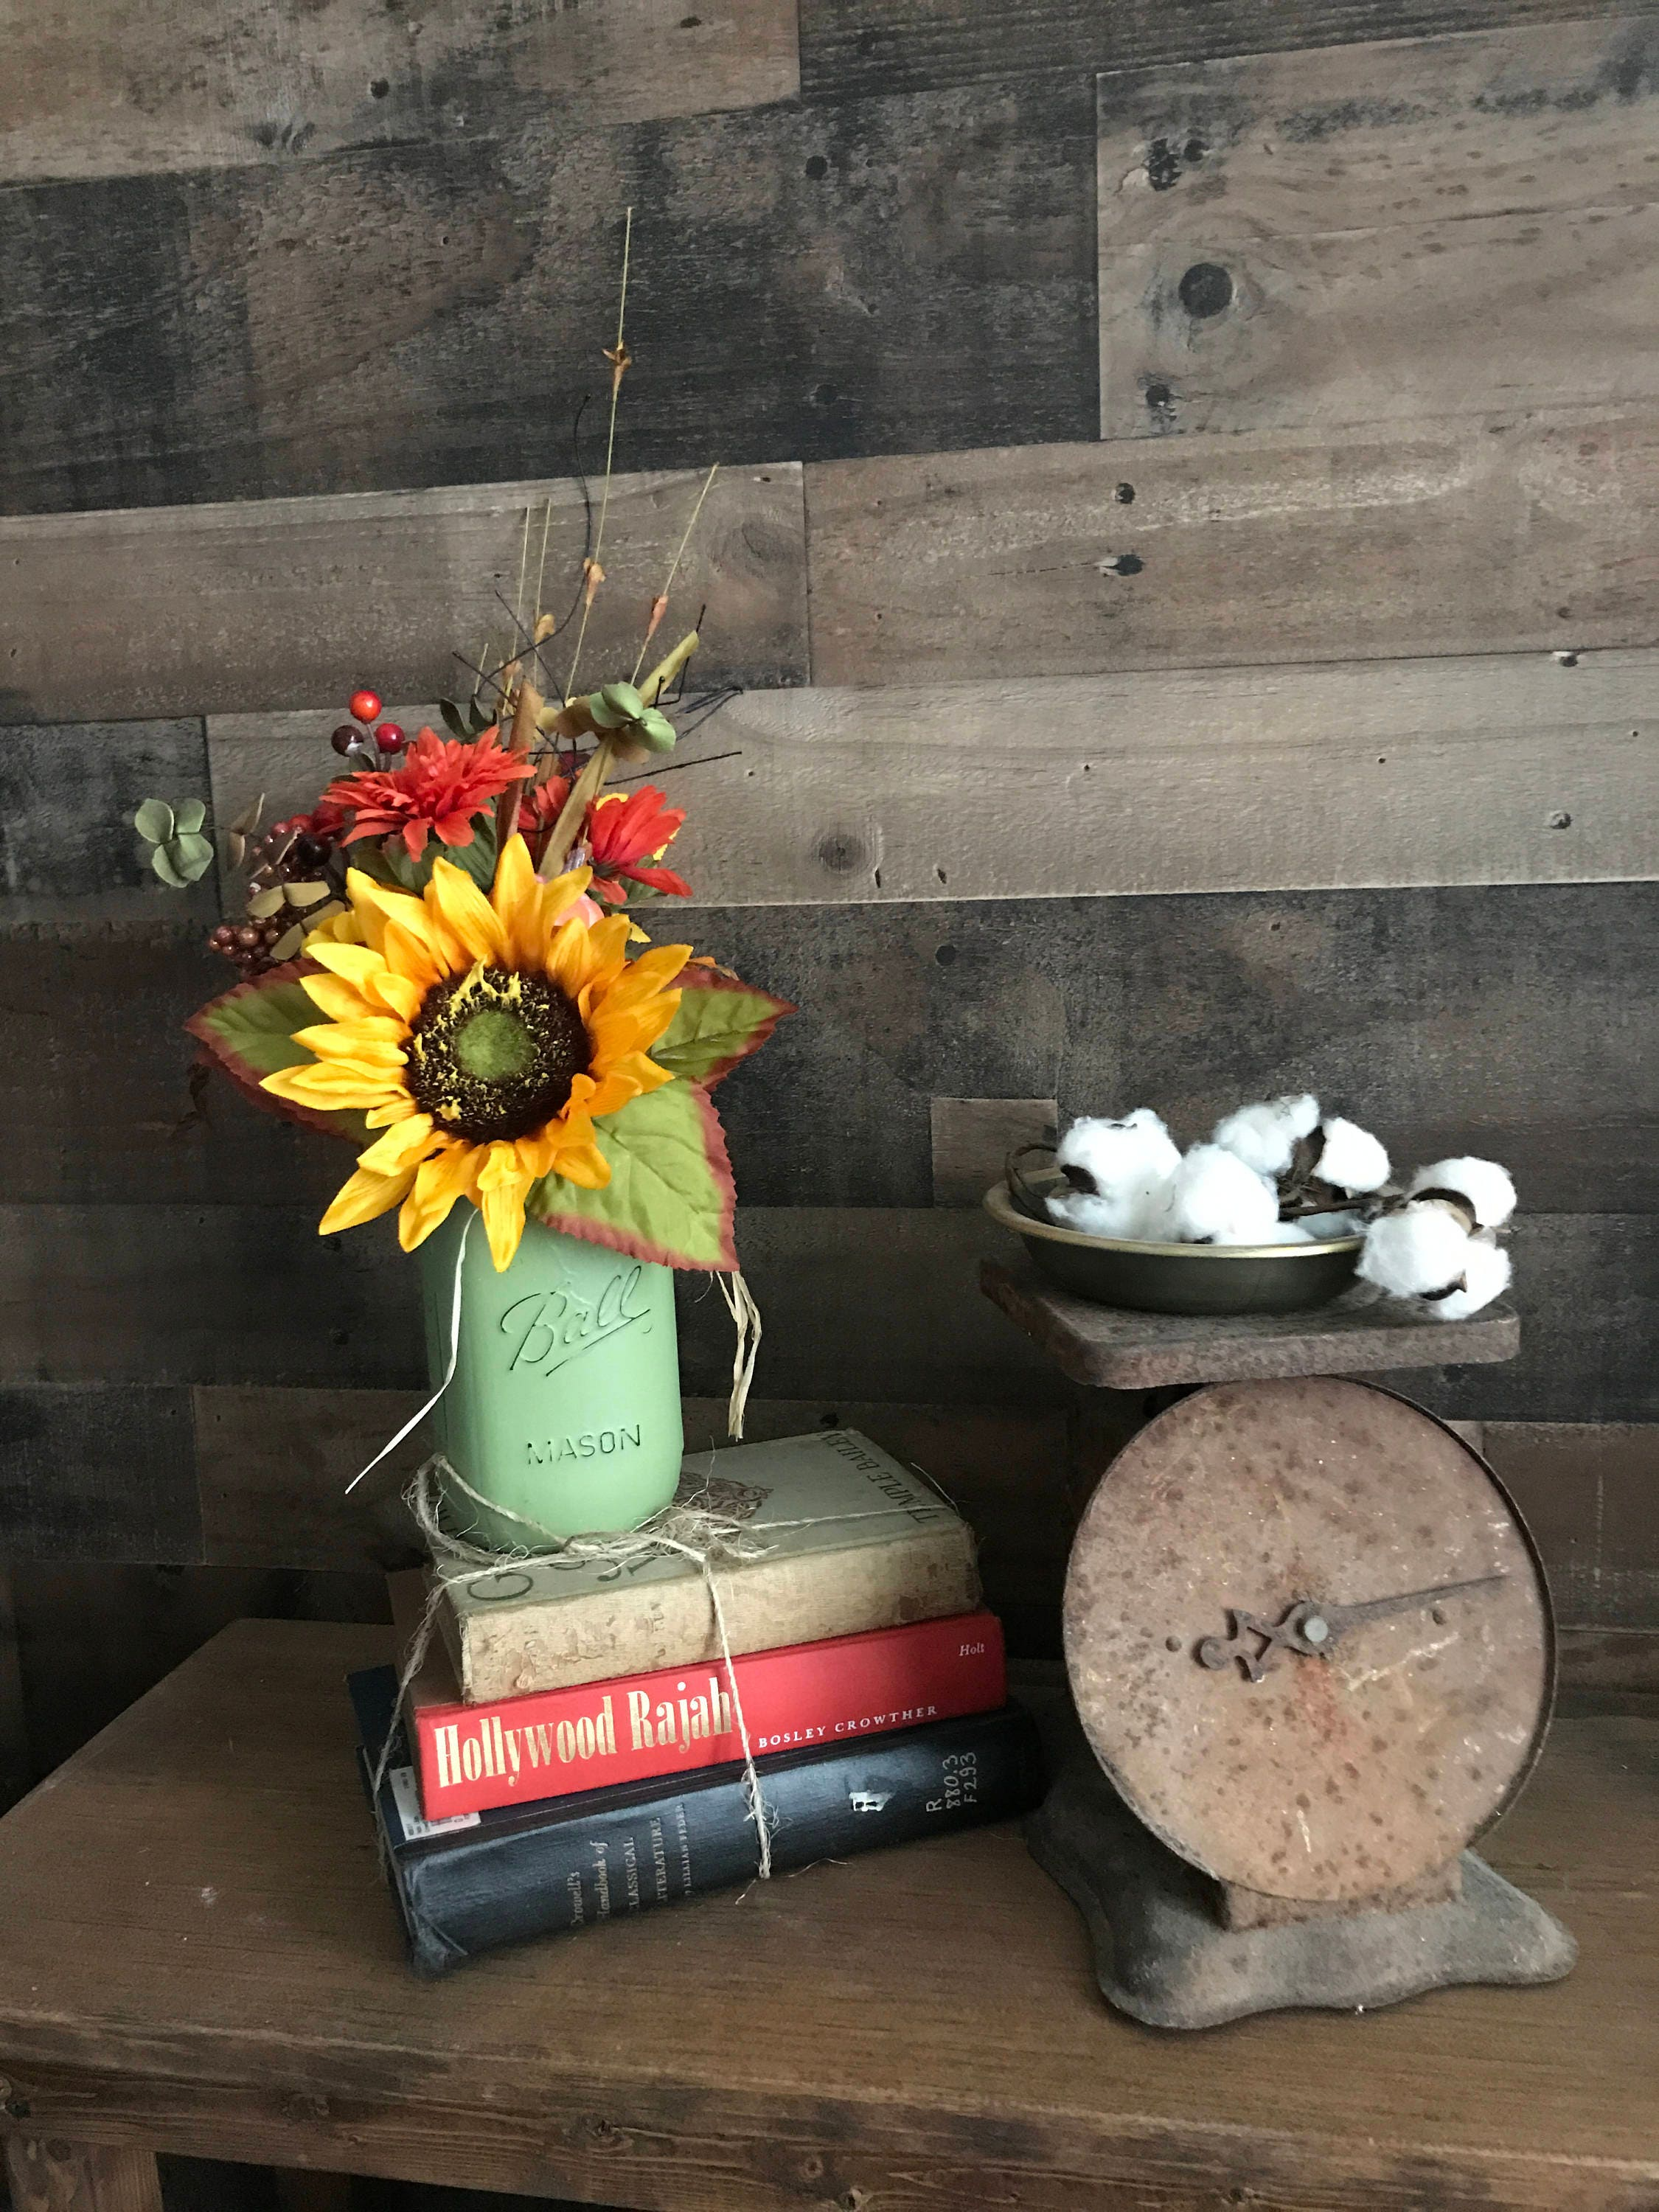 Fall Decor Home Floral Arrangement Decorations Thanksgiving Rustic Country Flowers Sunflower